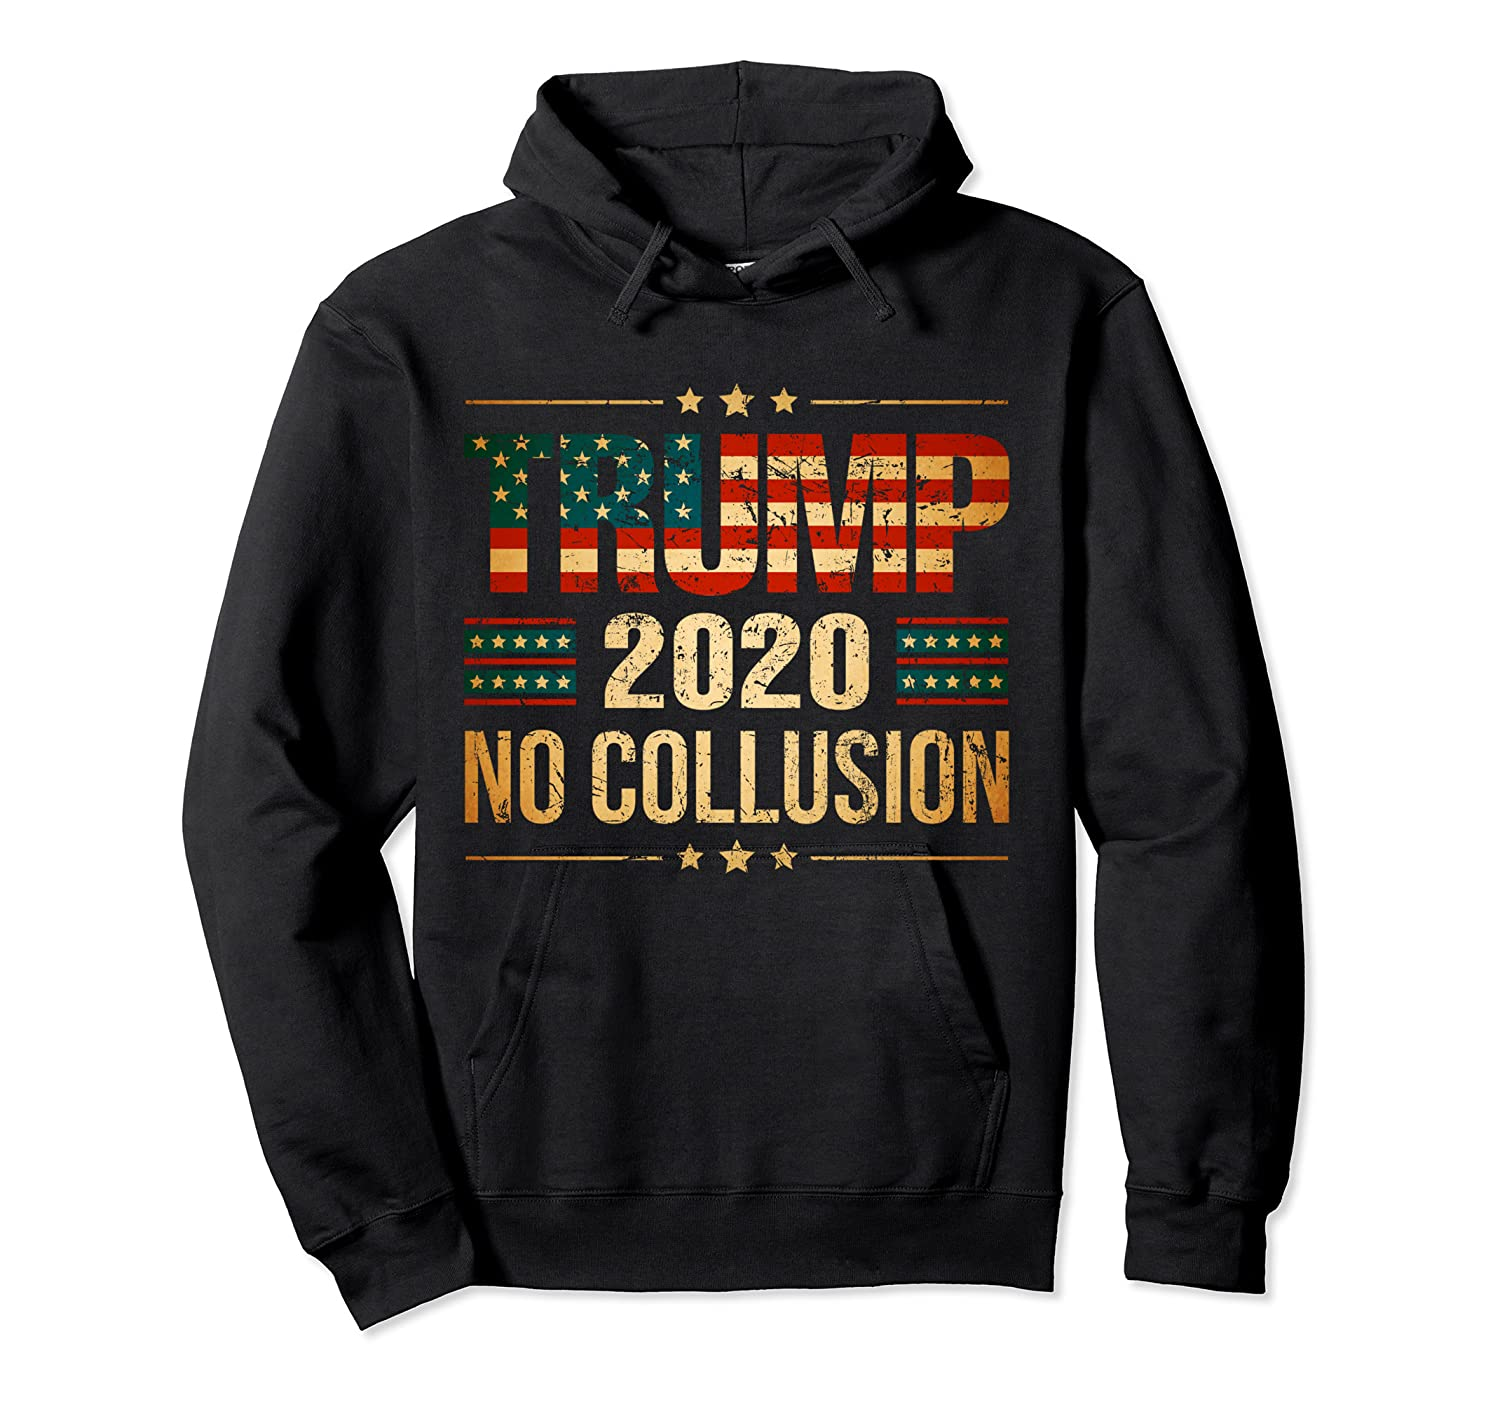 Trump 2020 No Collusion Shirts Unisex Pullover Hoodie